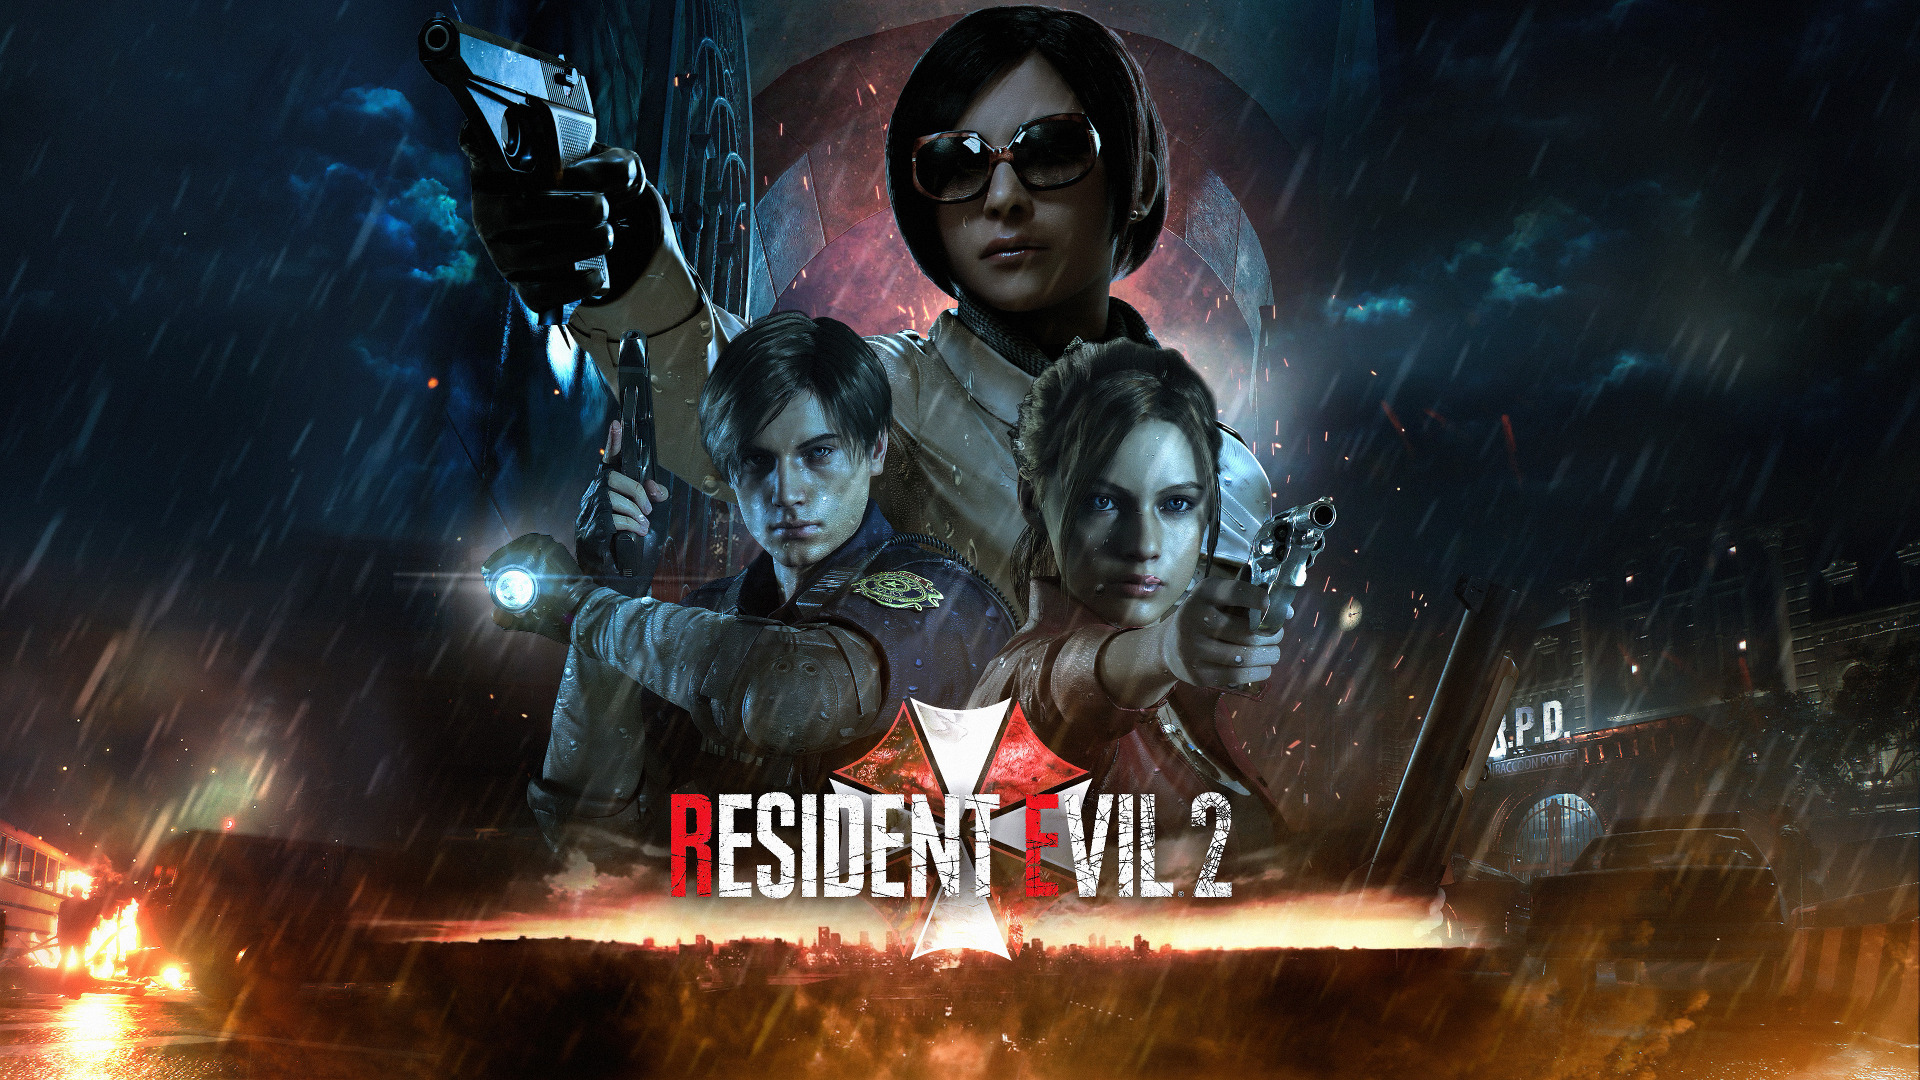 Resident Evil 2 2019 Wallpapers Hd Wallpapers